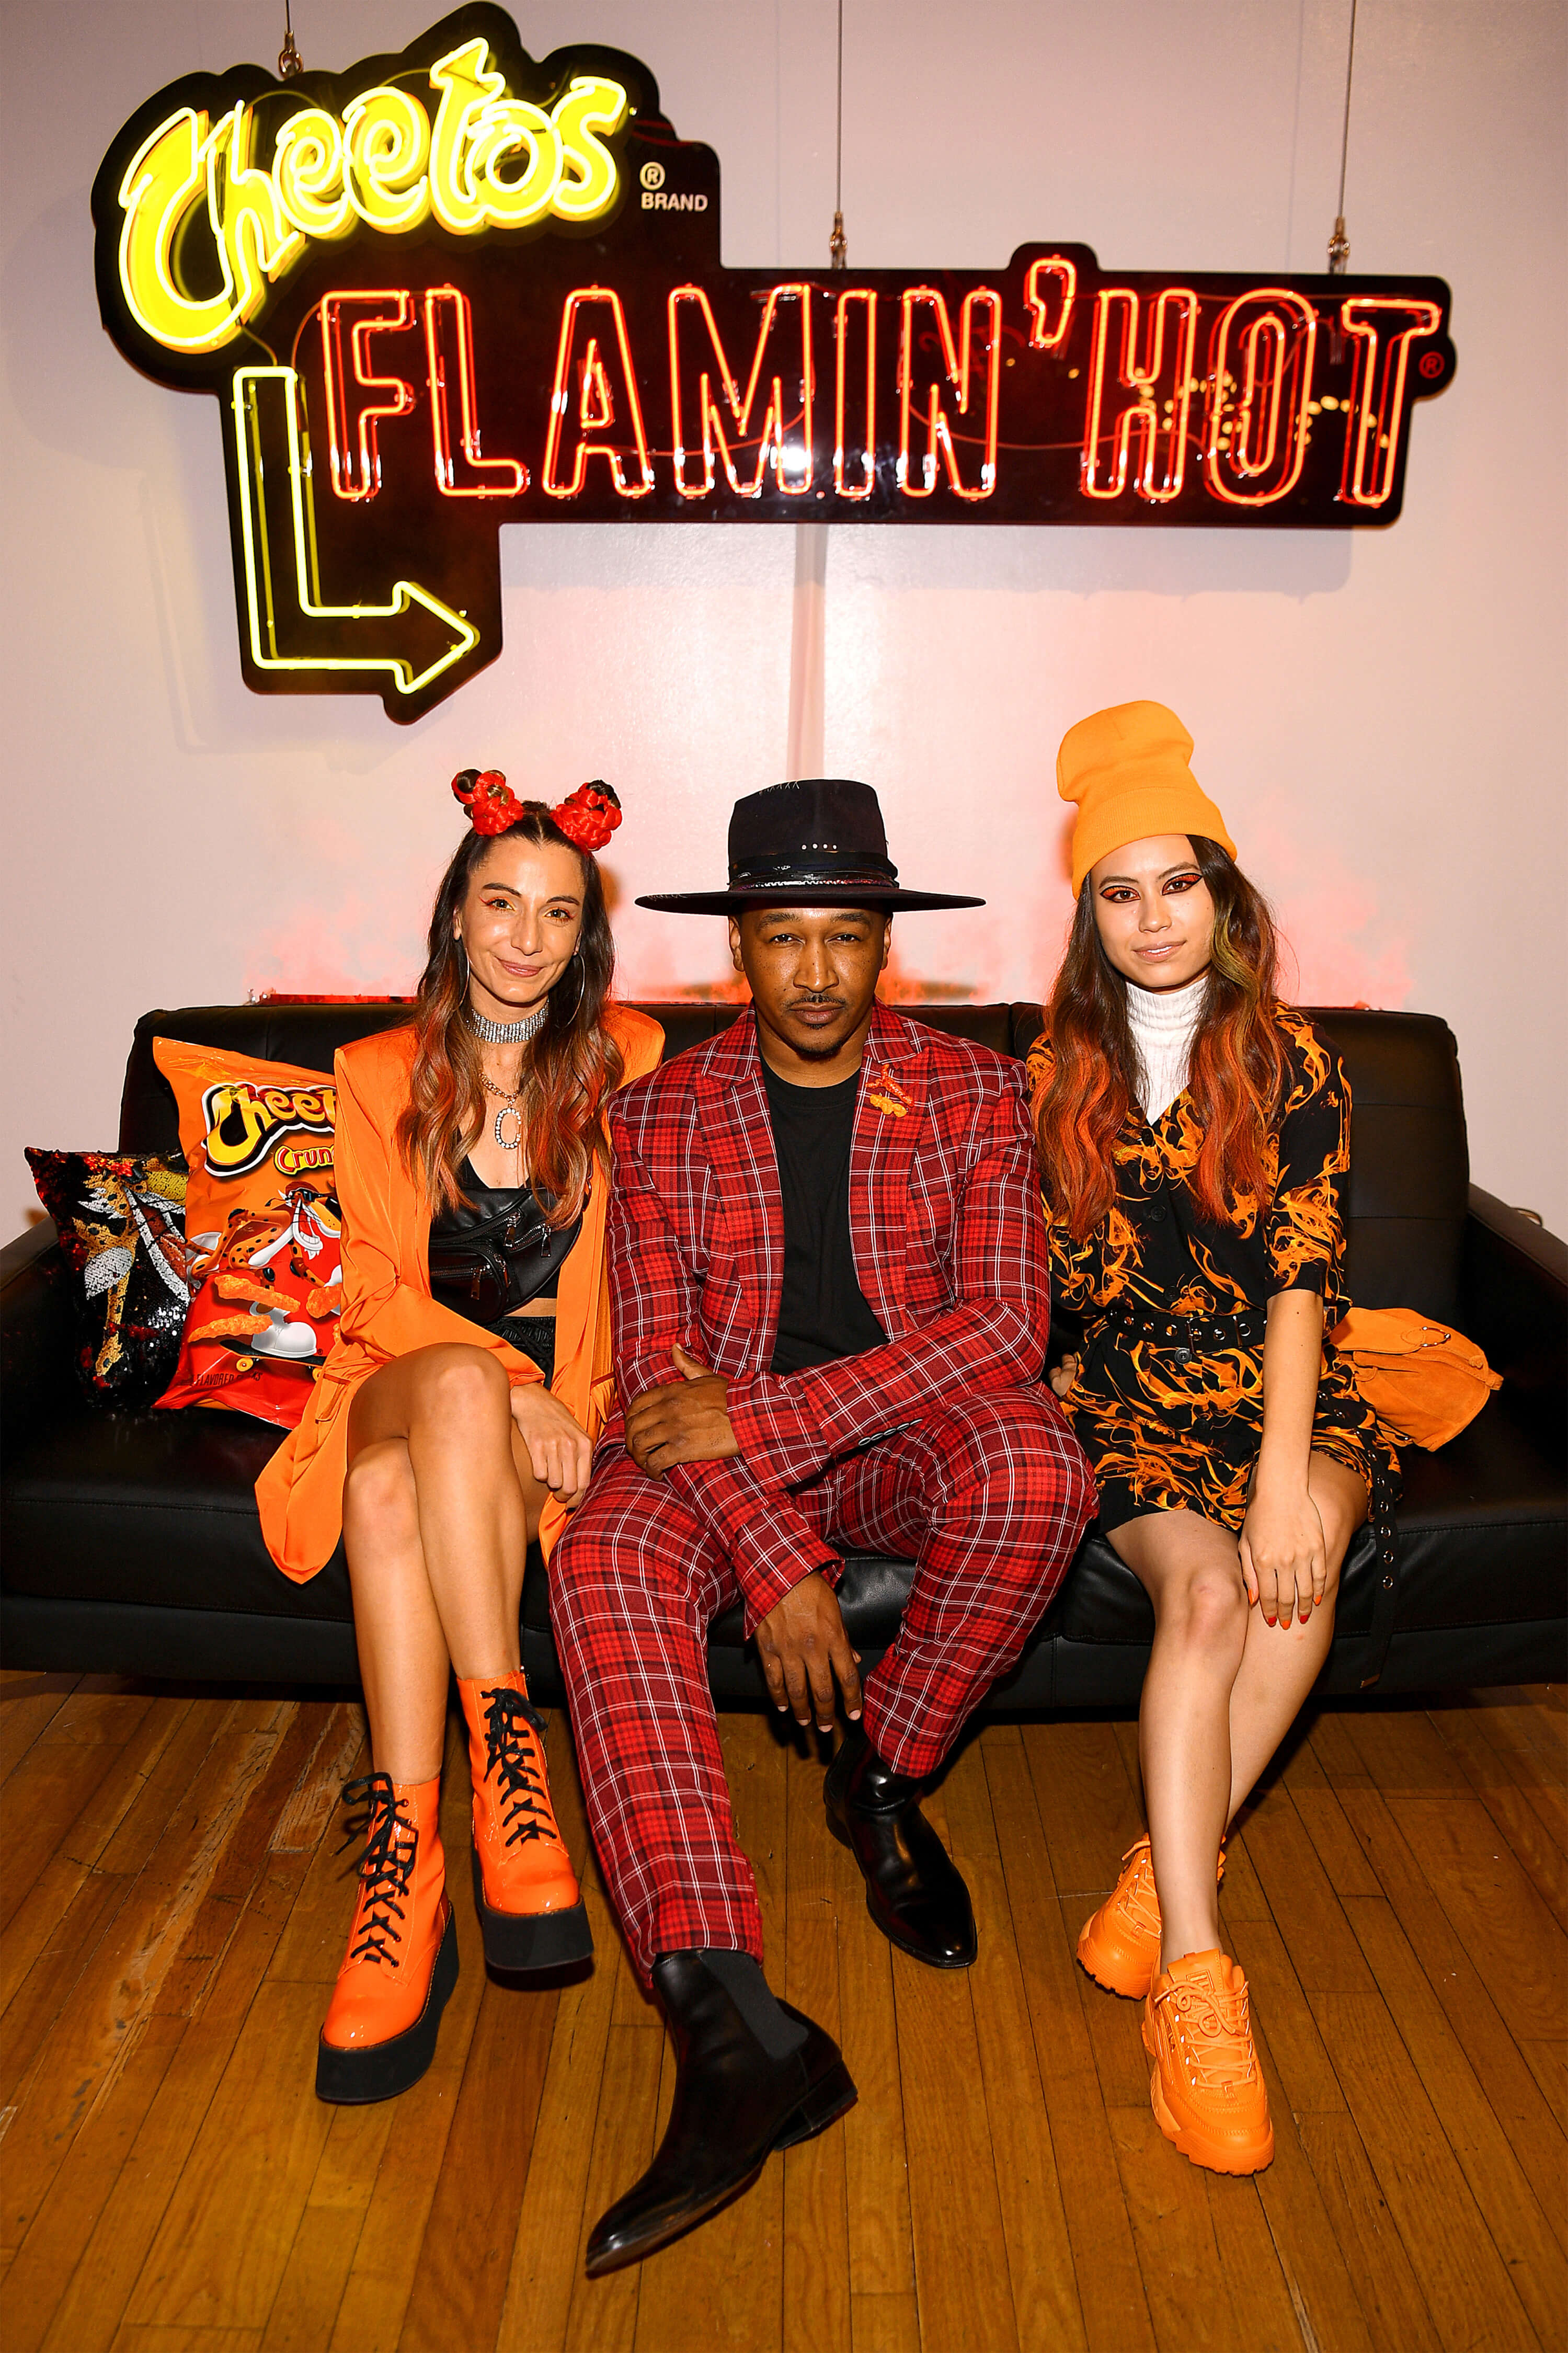 TMA and Cheetos recruited fashion influencers such as celebrity stylist J. Bolin and costume designer Ami Goodheart to curate 21 looks for the House of Flamin' Haute Runway Show.